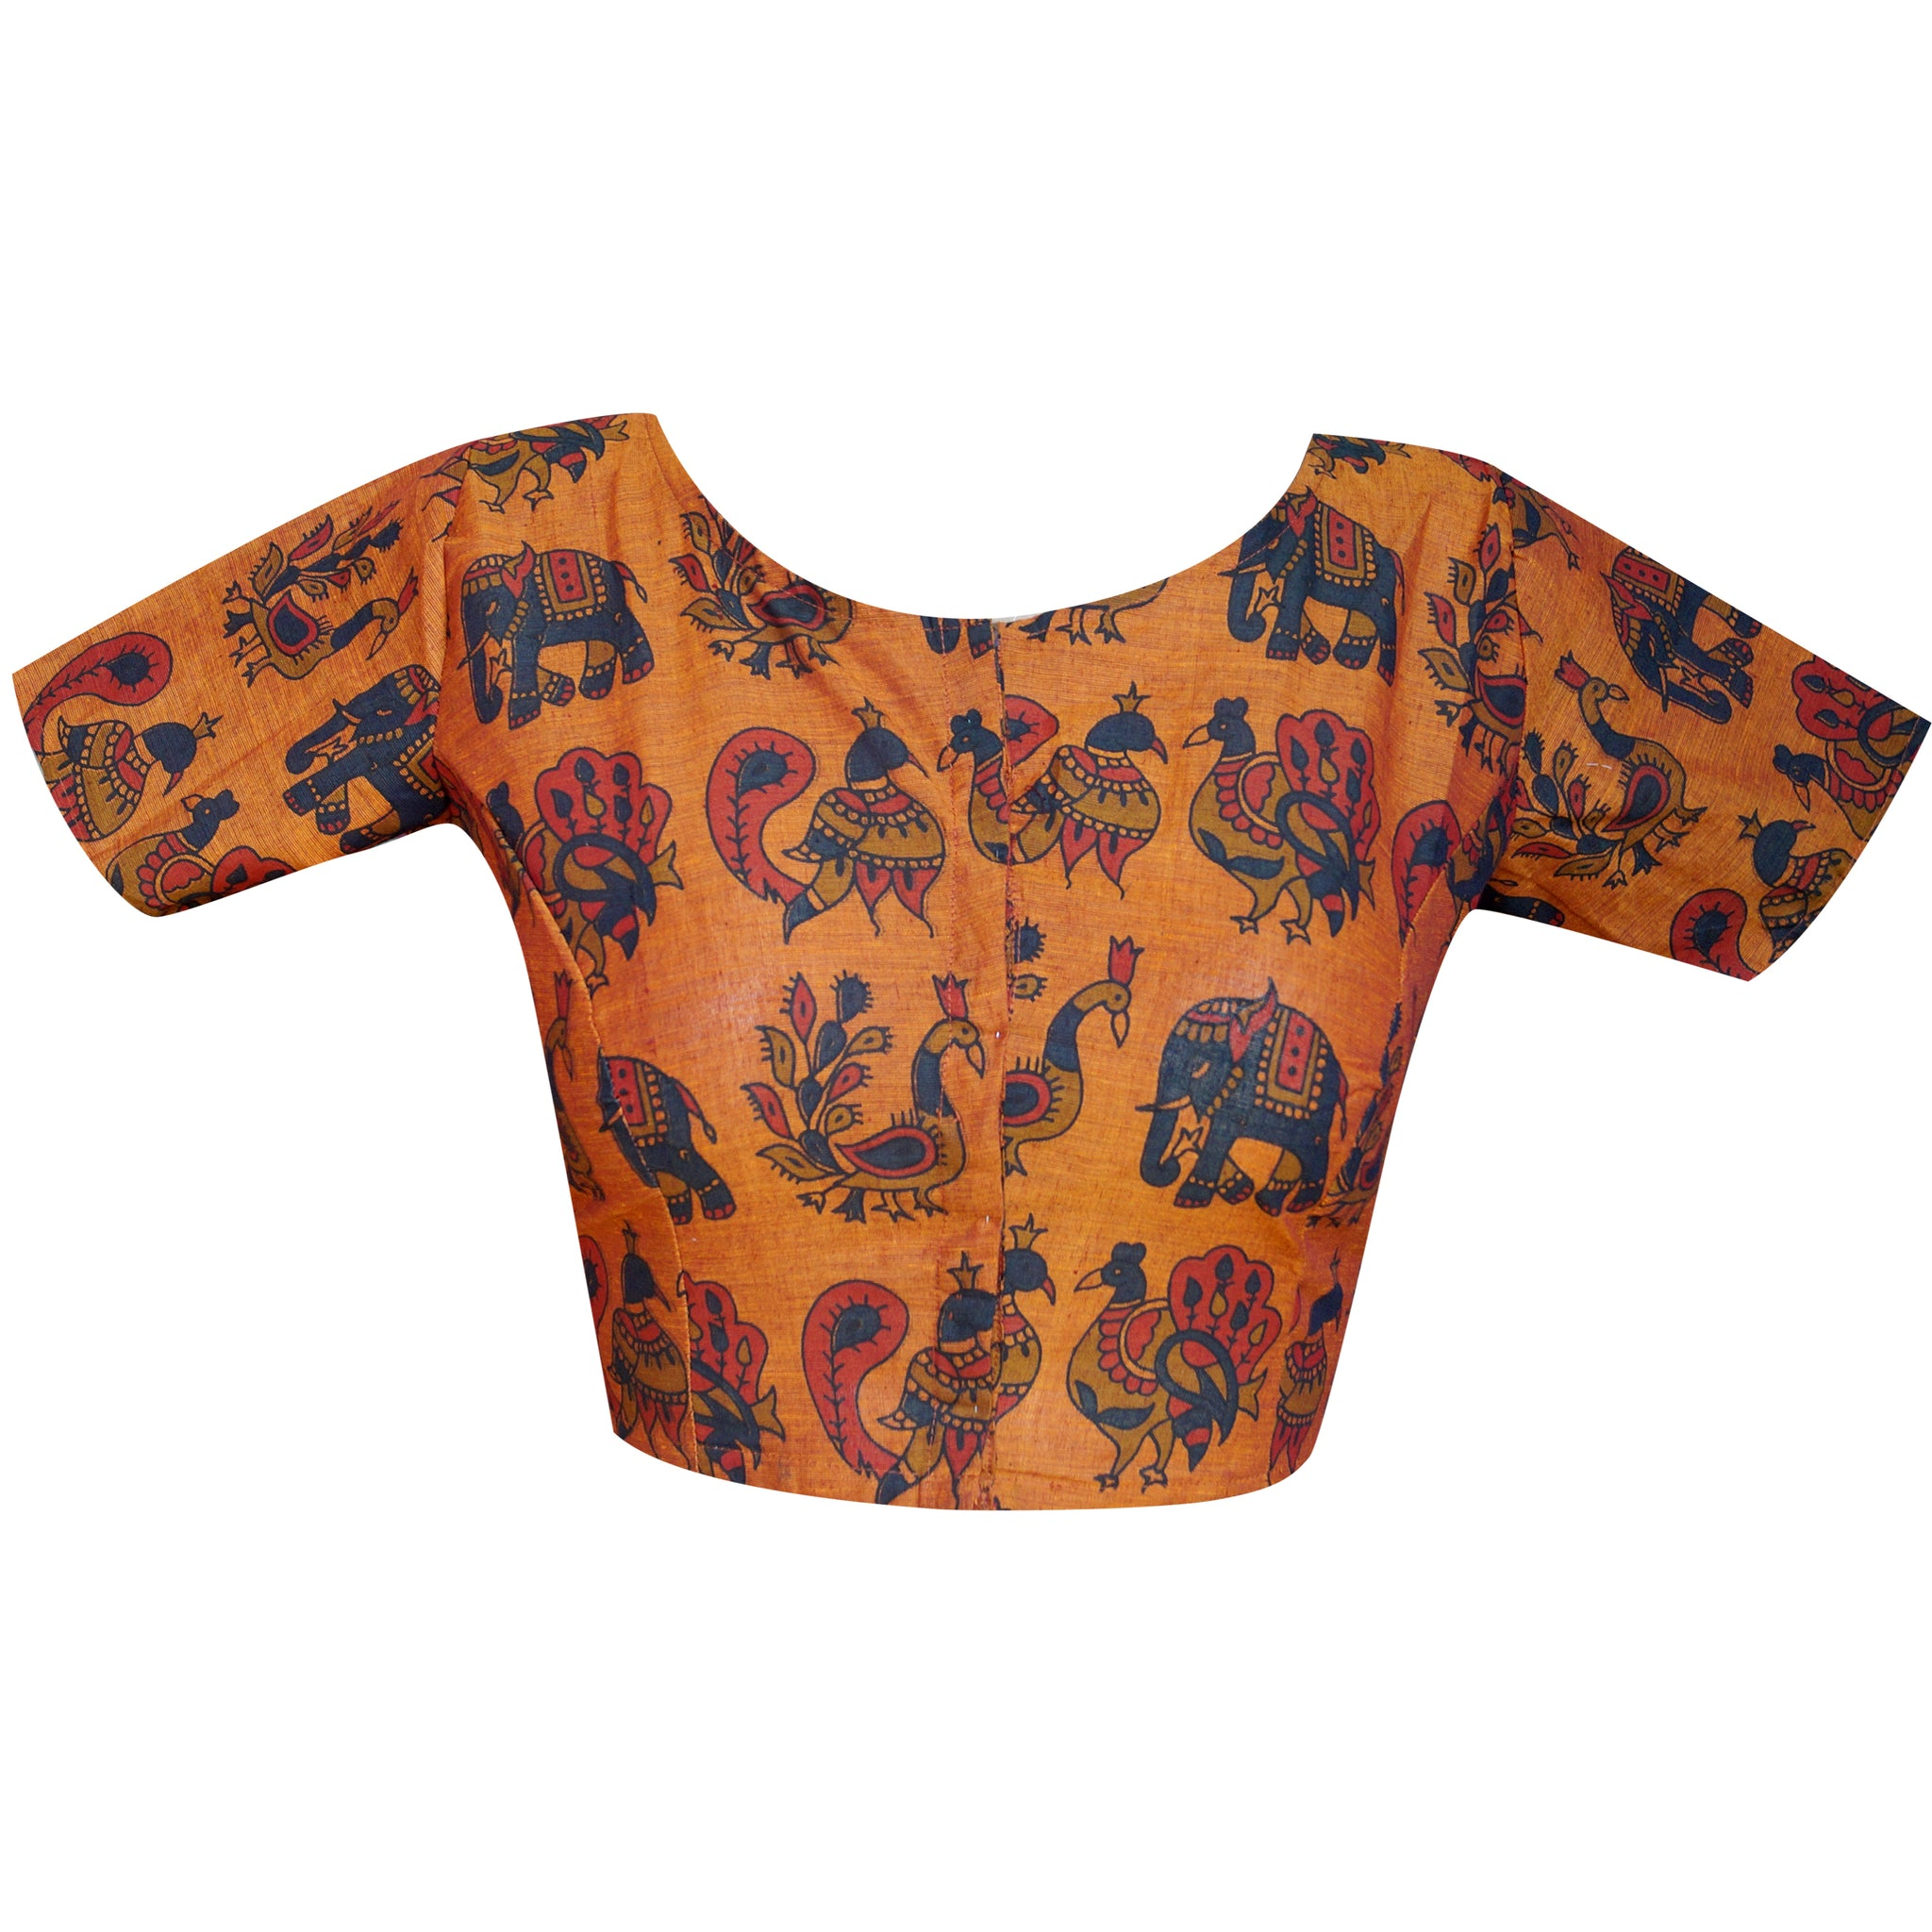 69b808baf1353e Boat Neck South Cotton Kalamkari printed Readymade Blouse - Master Weaver  Ethnics India